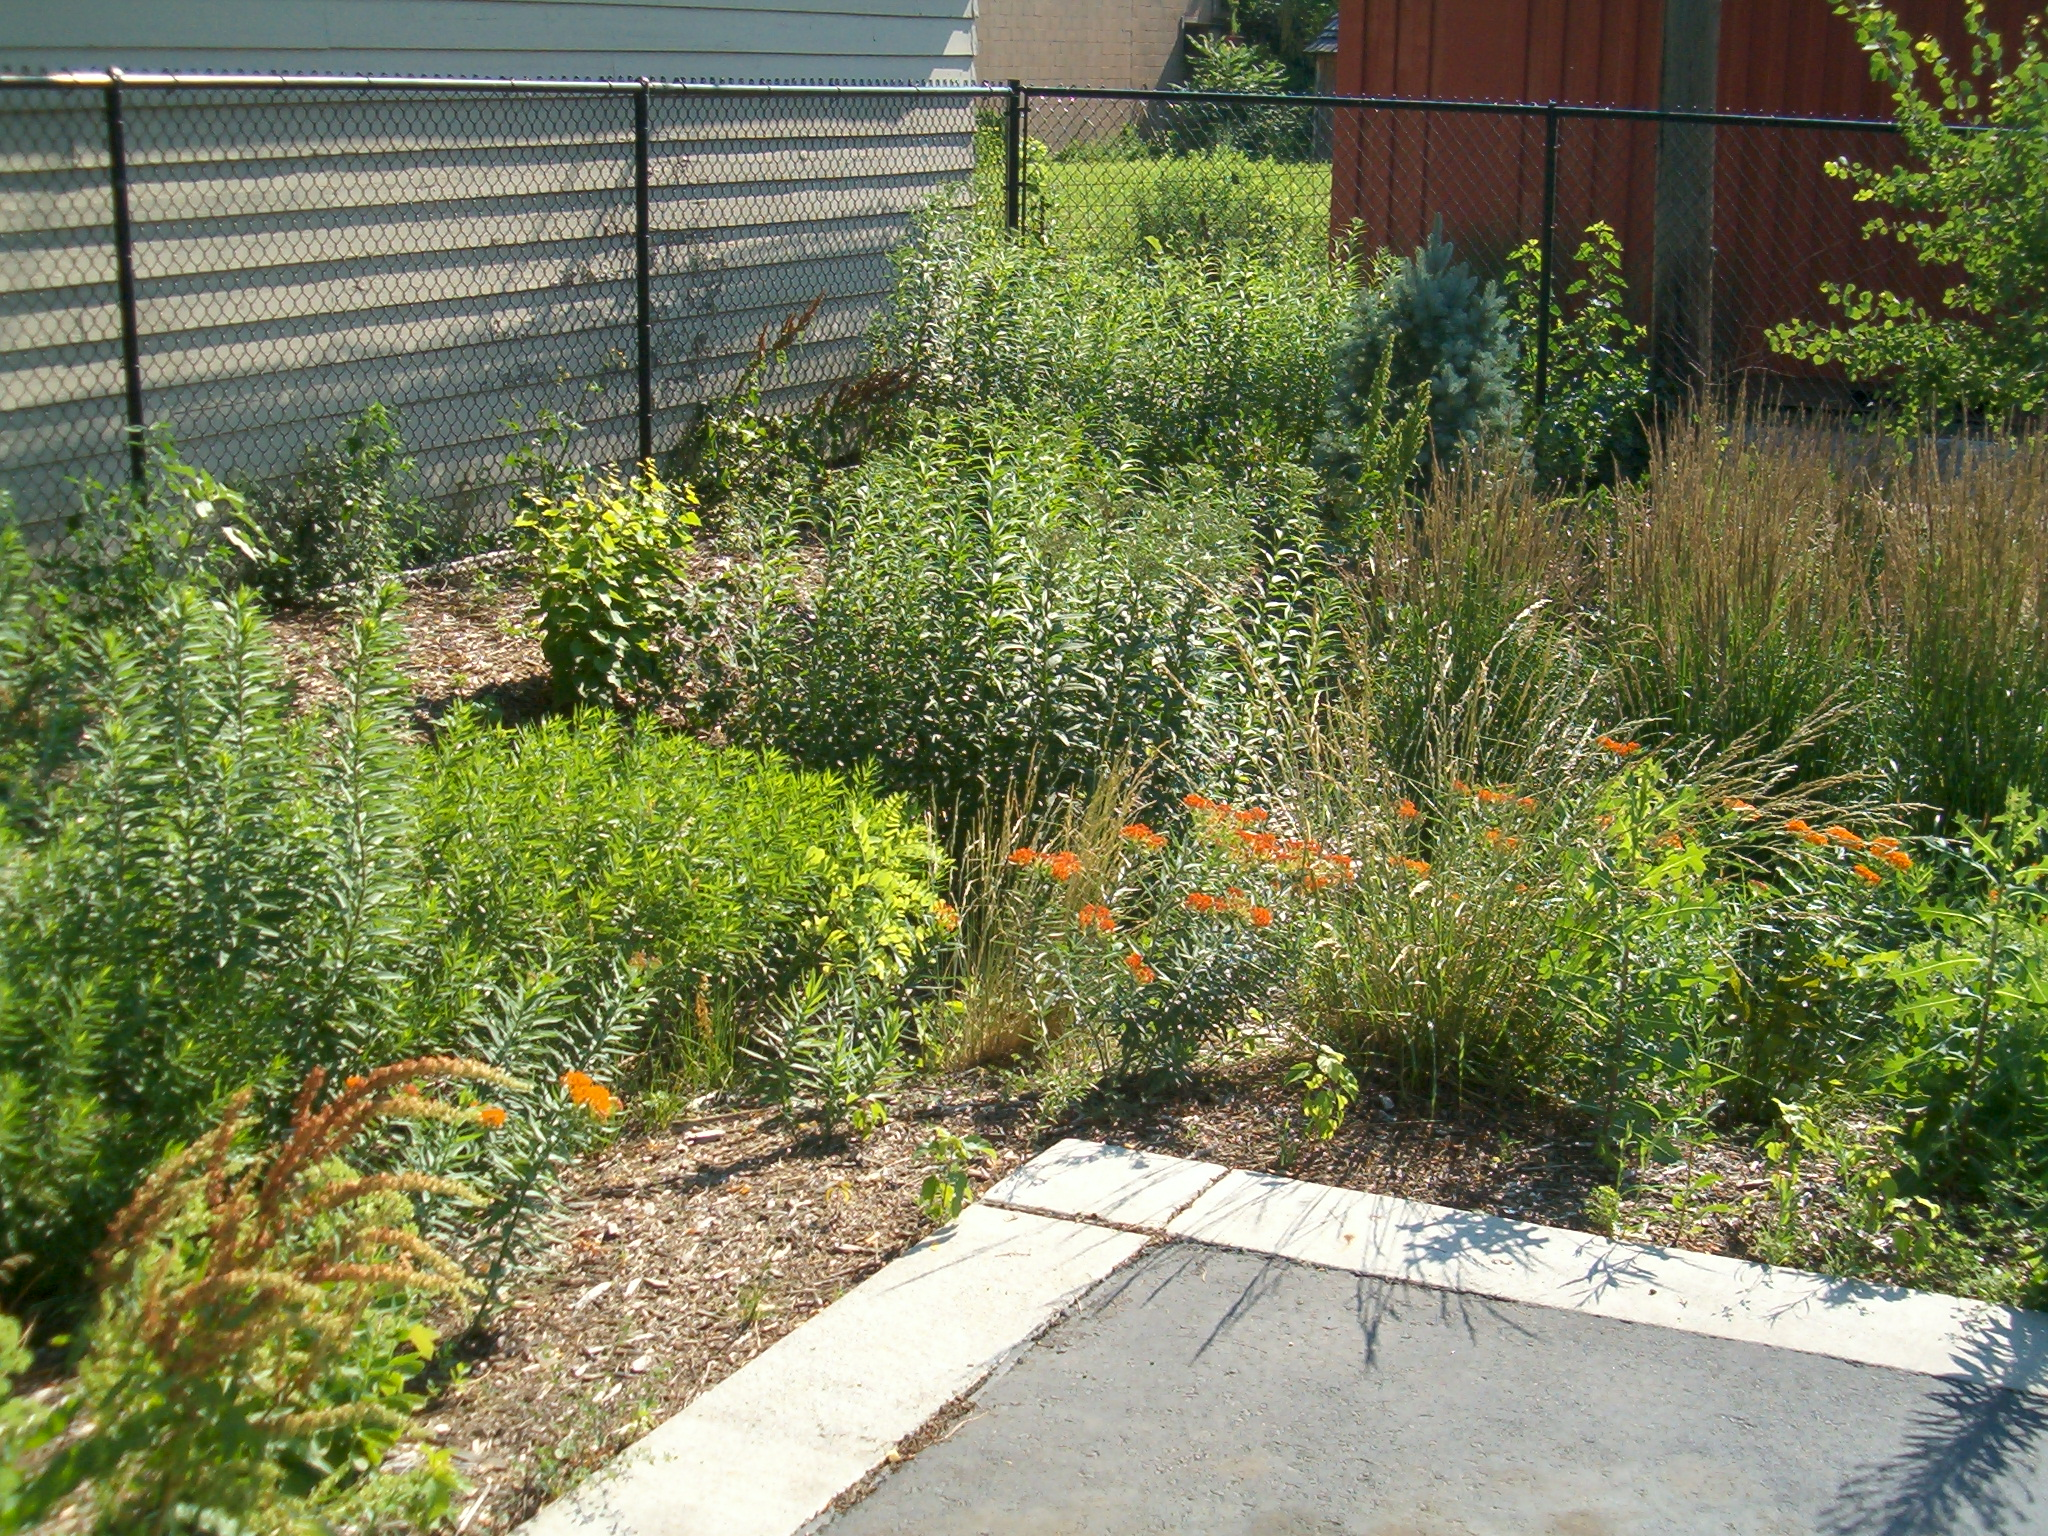 File 7sigma Raingarden 66 Jpg Wikimedia Commons